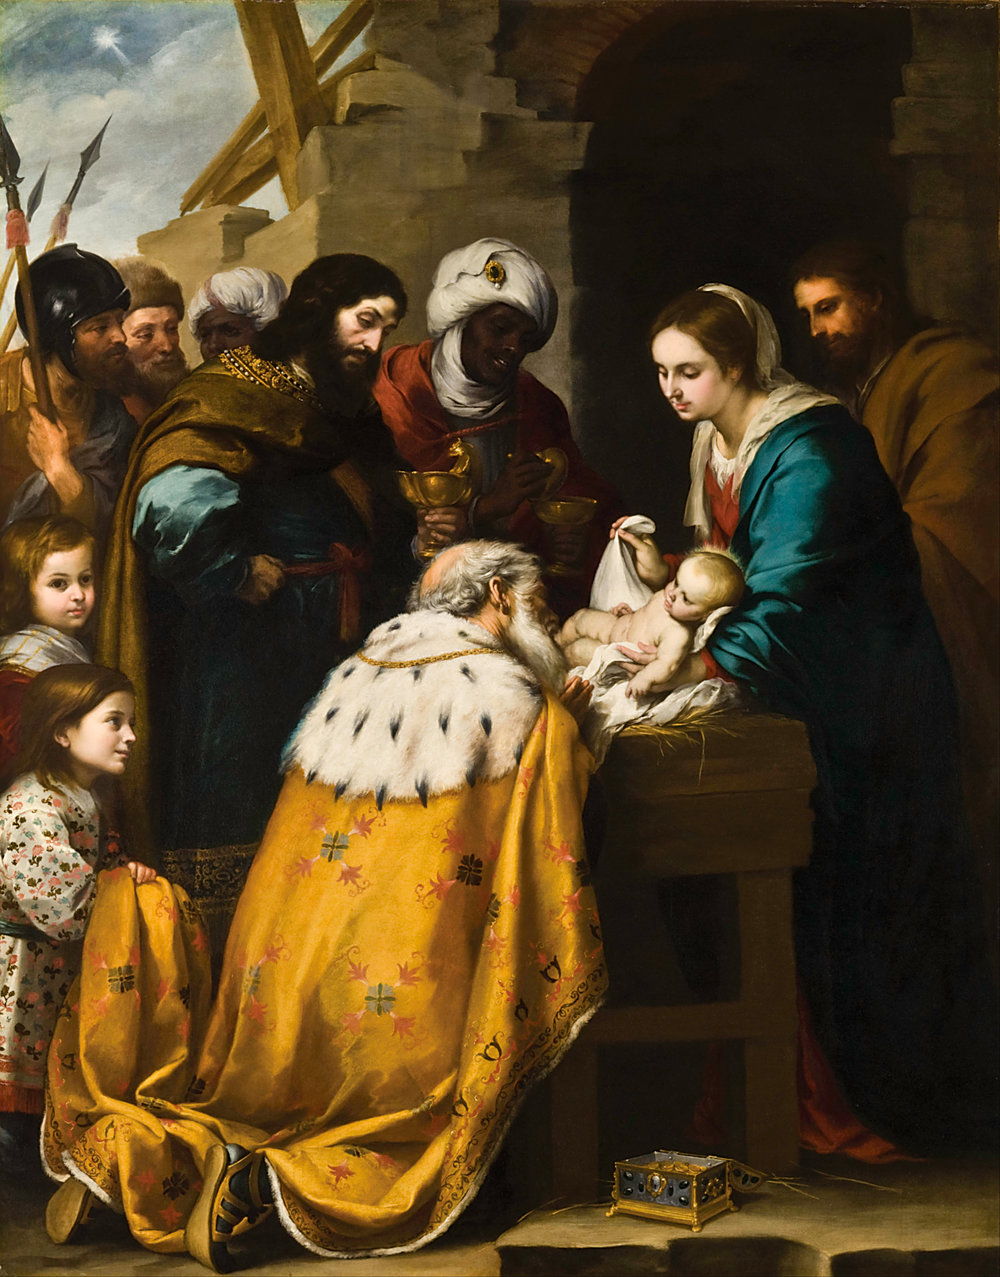 —Murillo, Bartolomé Esteban.  The Adoration of the Magi . 1655-1660. Toledo Museum of Art, Ohio.